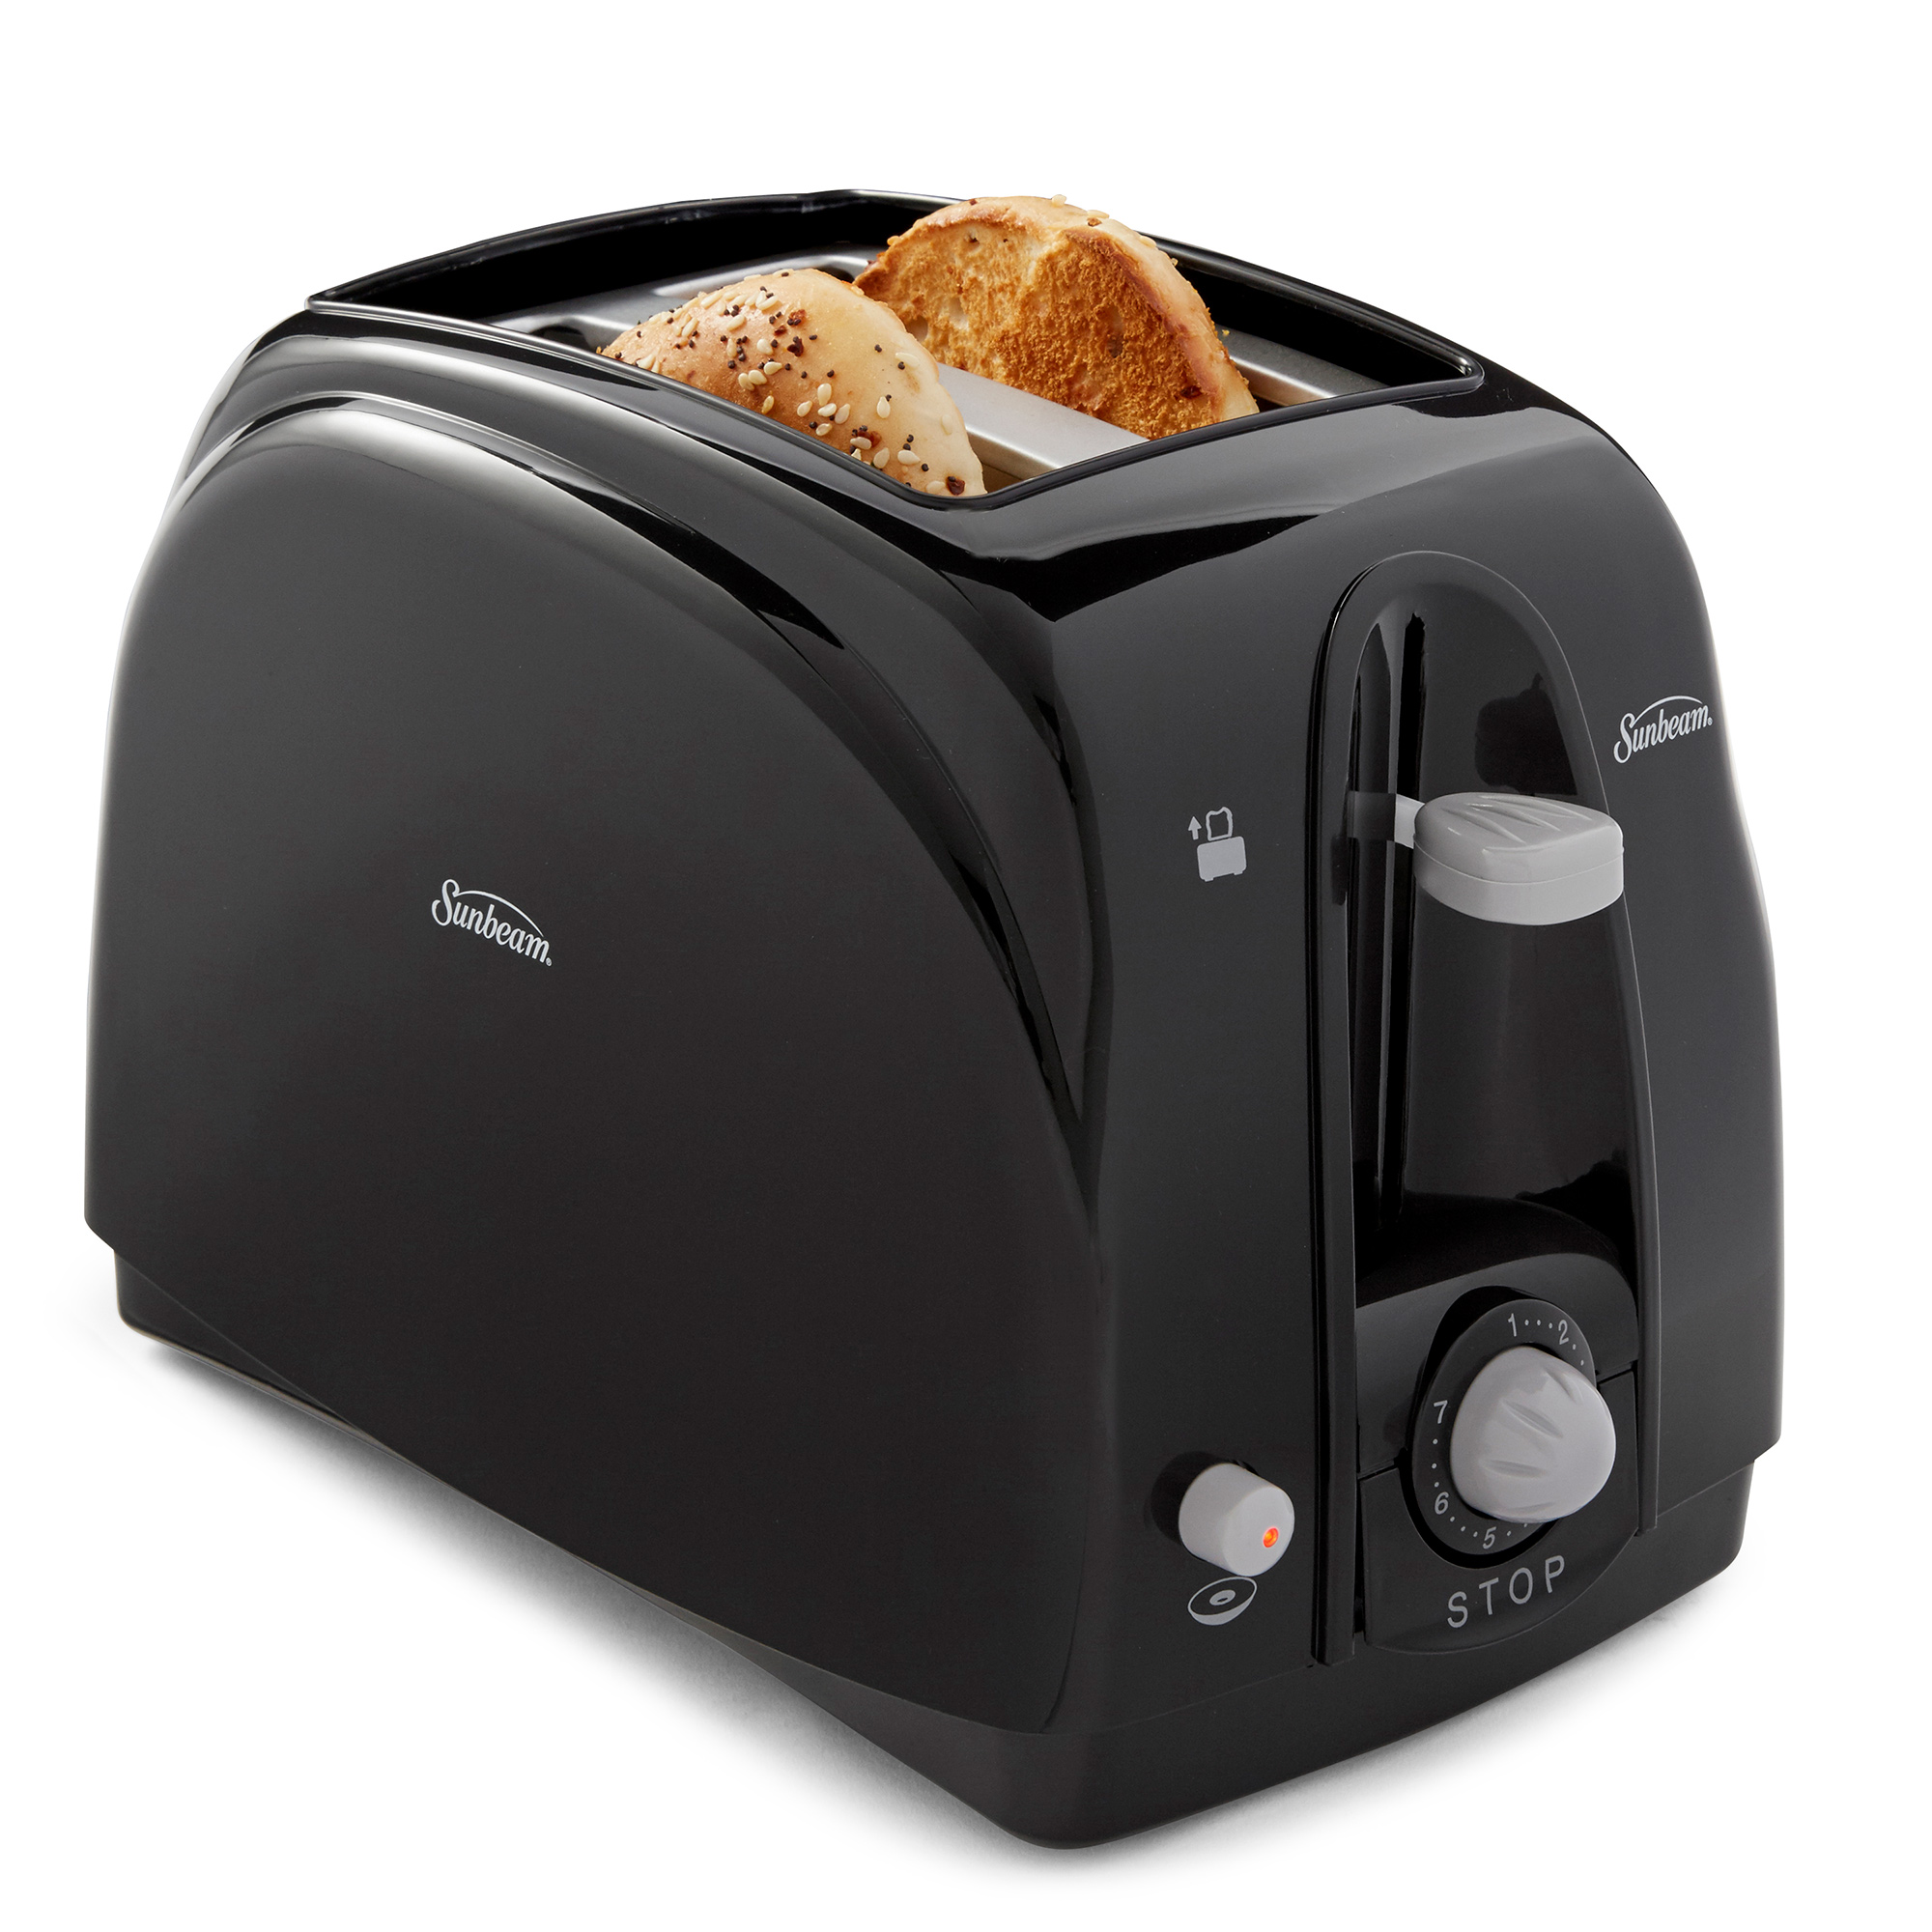 Sunbeam 2-Slice Toaster, Black (003910-100-000)